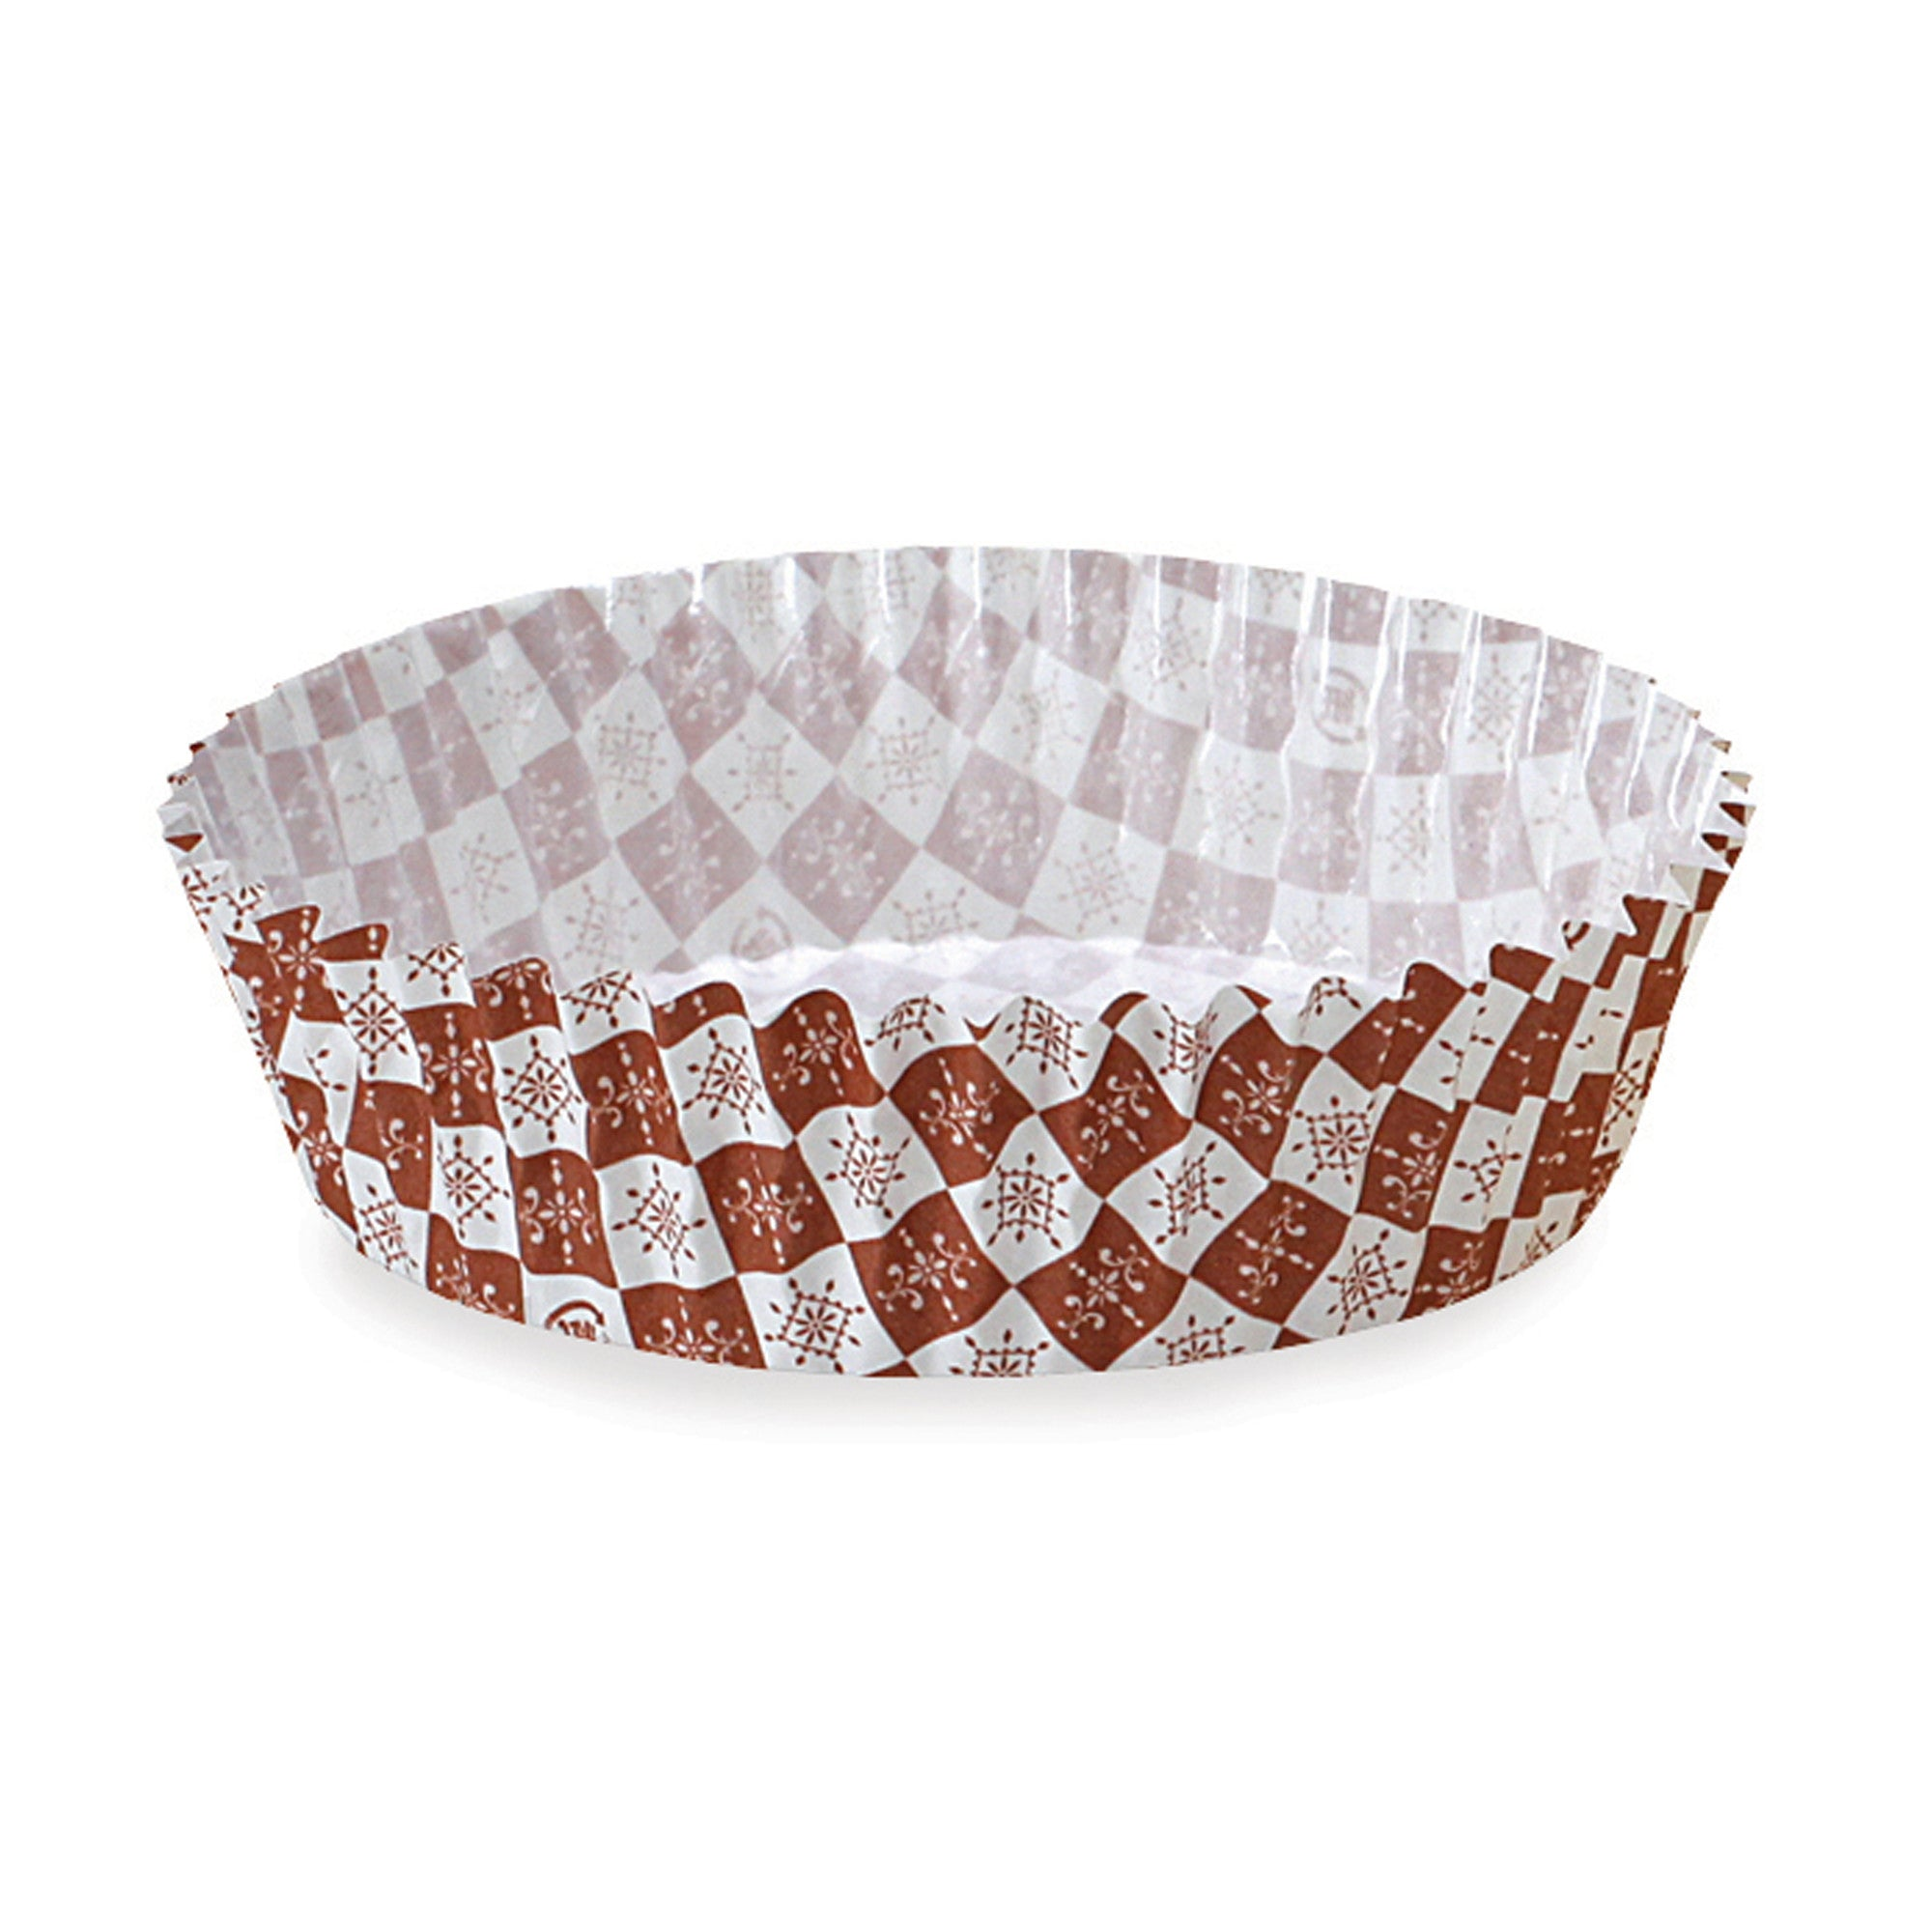 Ruffled Baking Cups, PTC07522B - Welcome Home Brands